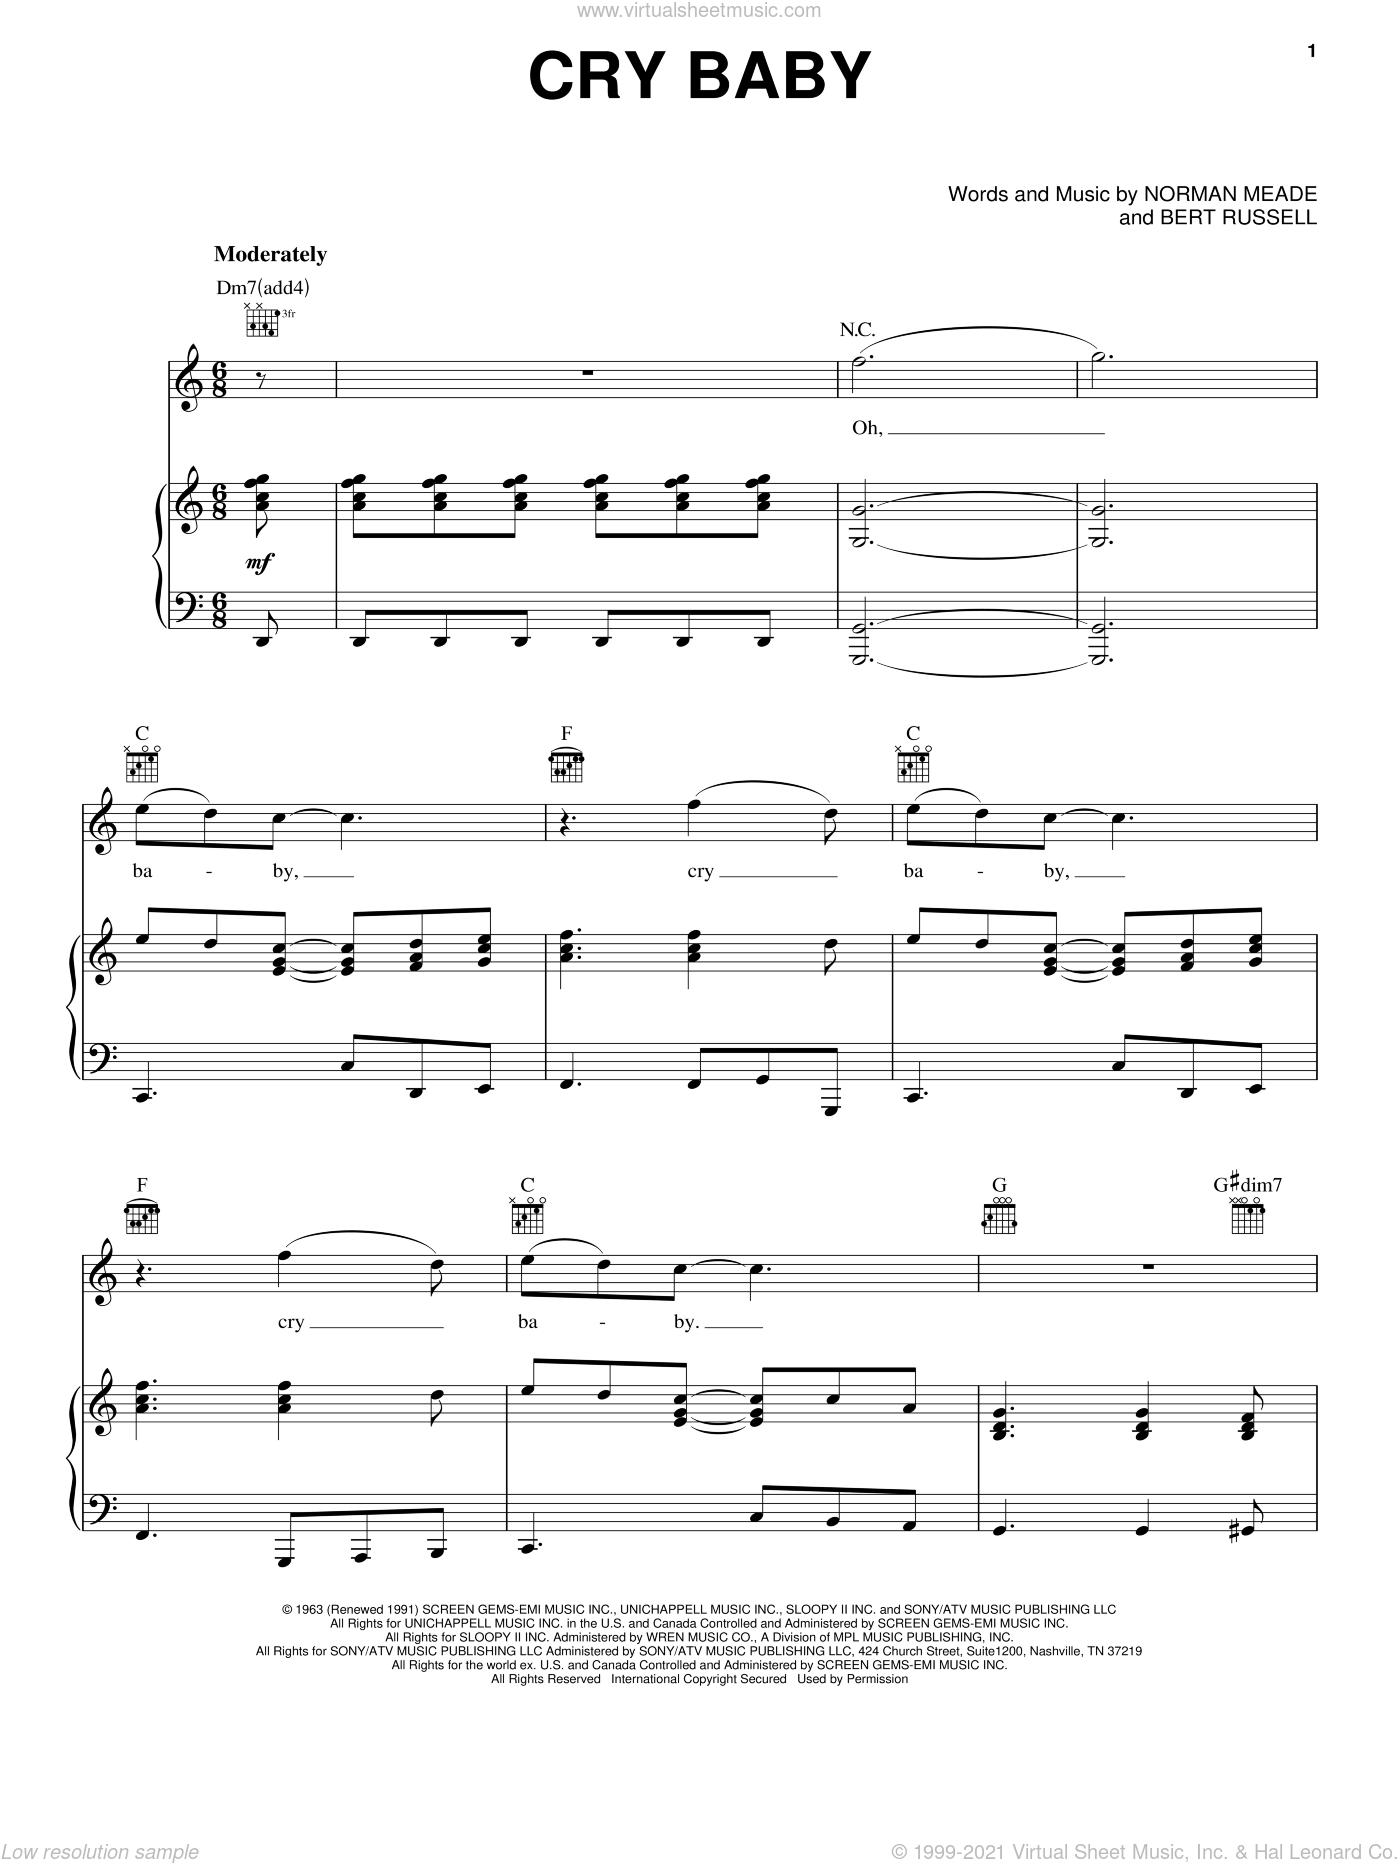 Cry Baby sheet music for voice, piano or guitar by Janis Joplin, Garnet Mimms & The Enchanters, Bert Russell and Norman Meade, intermediate skill level